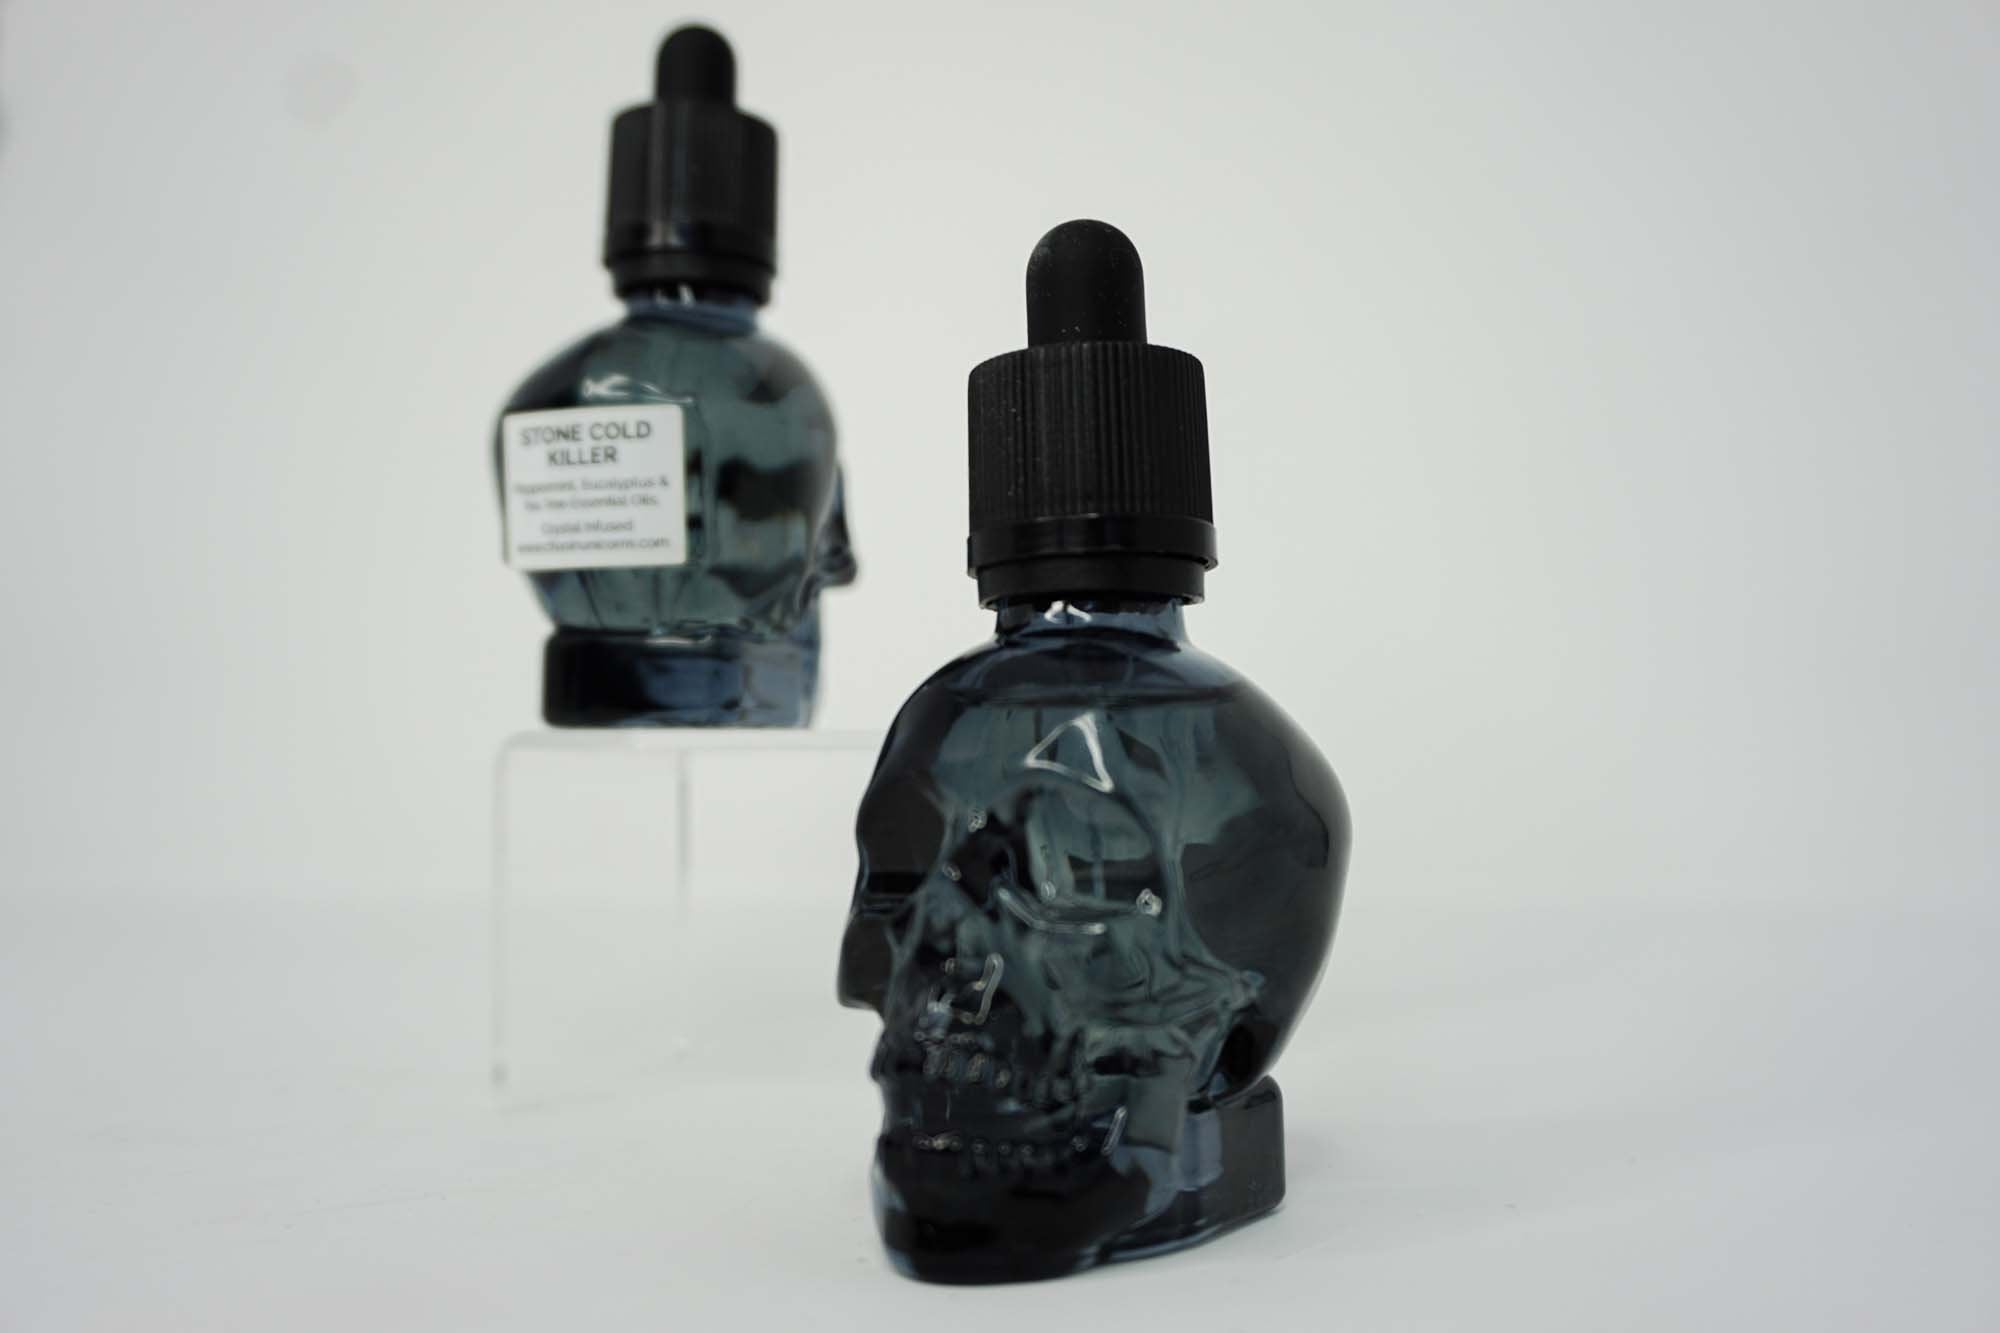 Stone Cold Killer Signature Oil Blend